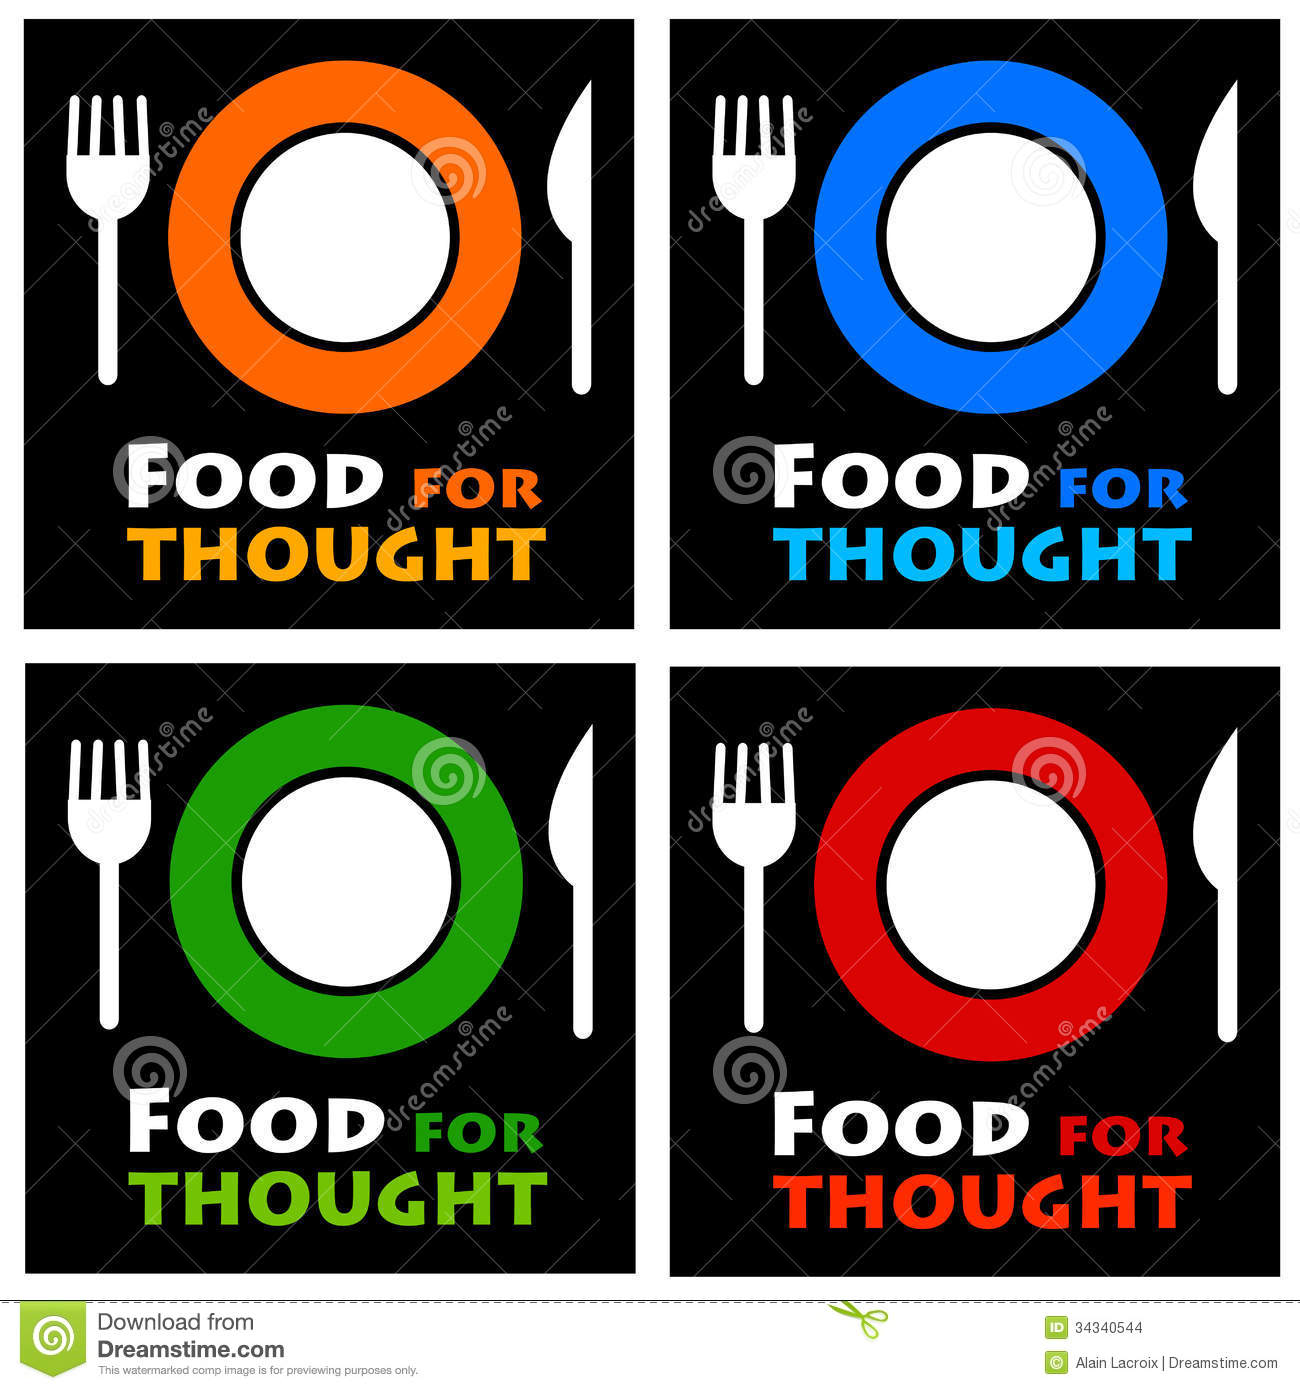 Food for thought clipart download Food For Thought Stock Images - Image: 34340544 download